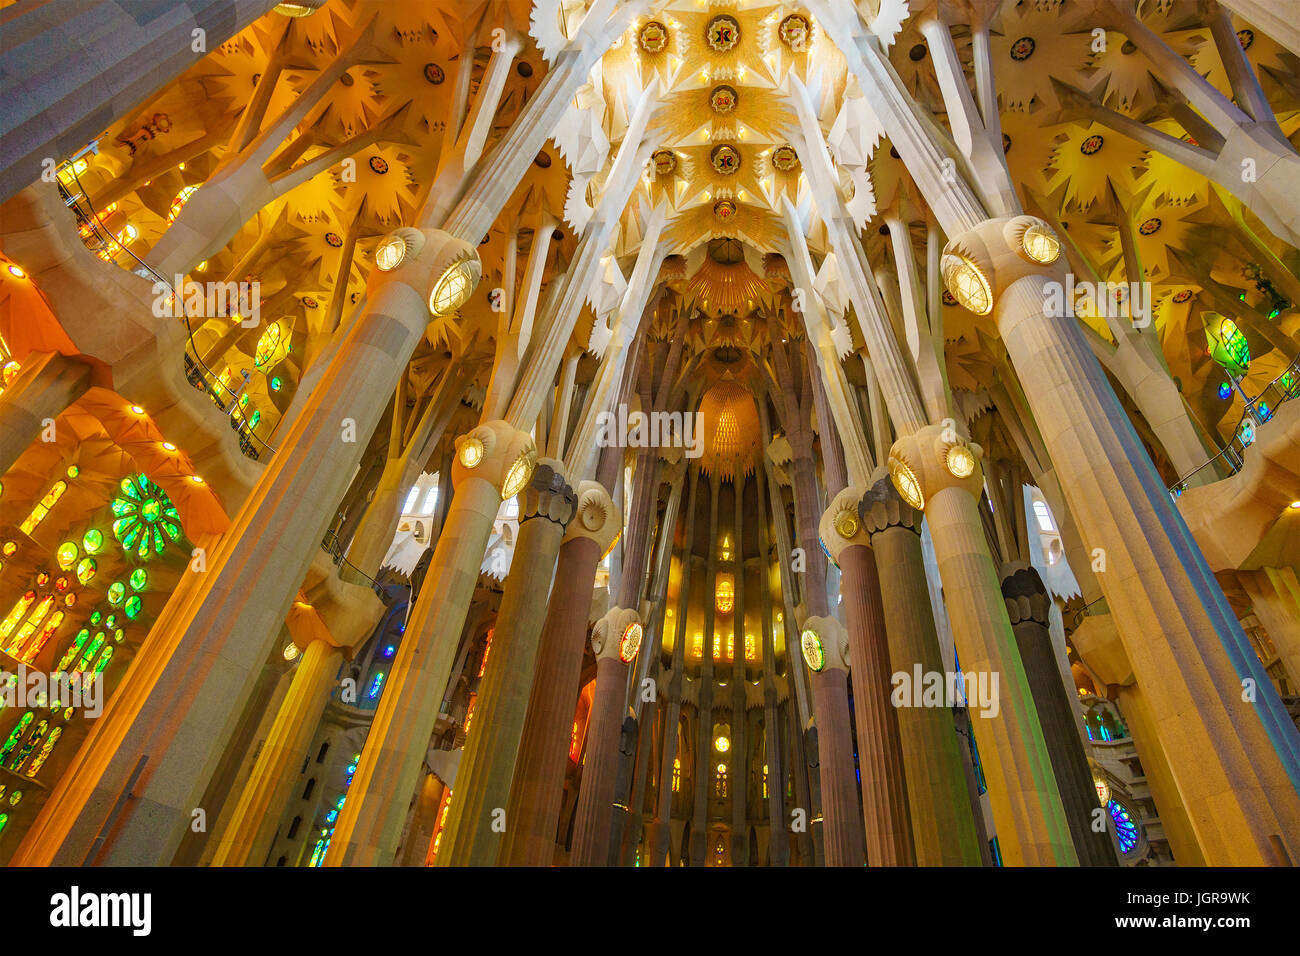 Sagrada Família (Basilica and Expiatory Church of the Holy Family) is a large Roman Catholic church in Barcelona, - Stock Image